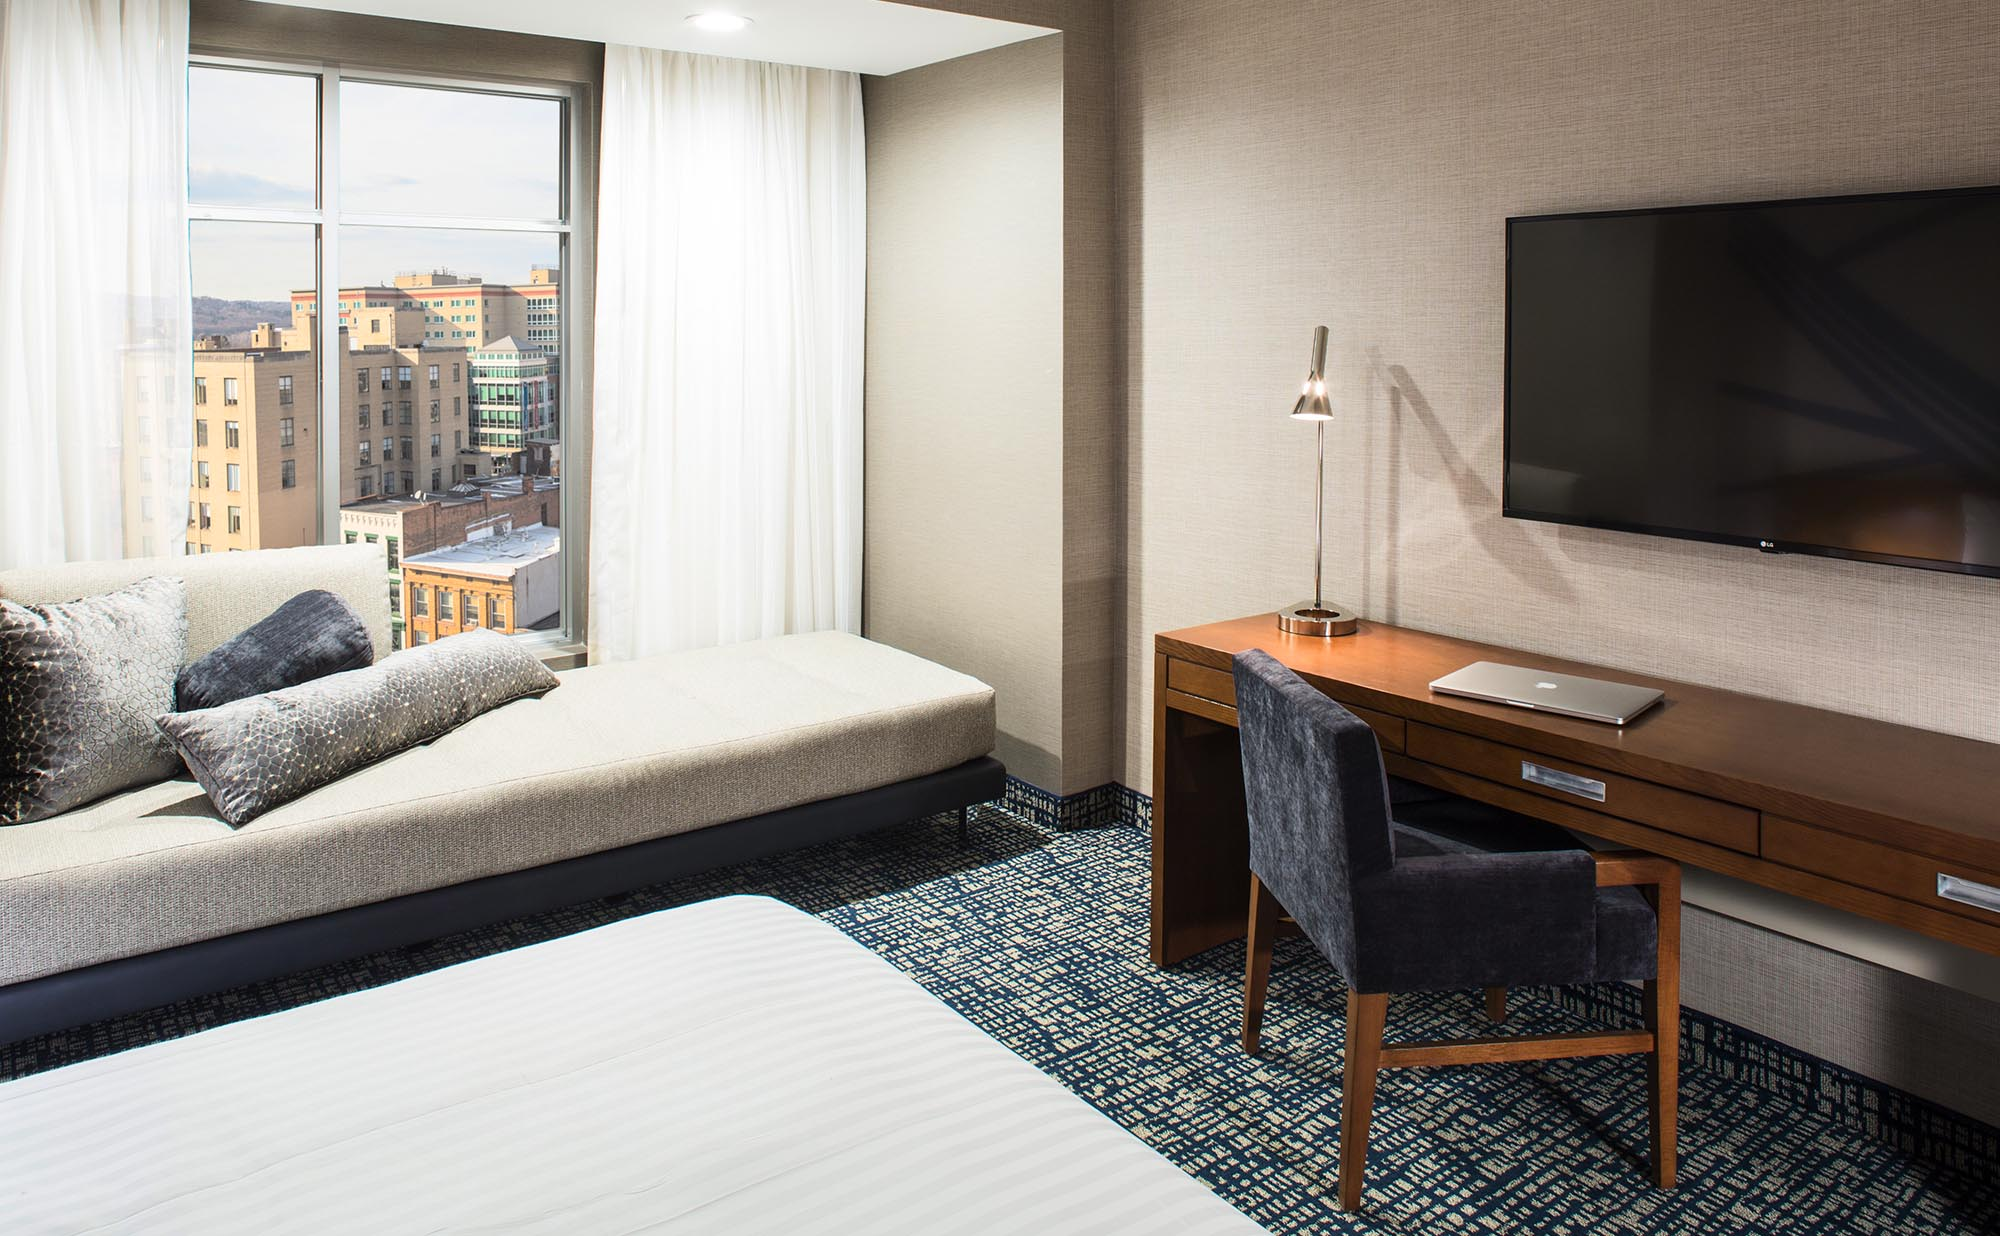 Guests Will Be Inspired At The New Toronto Marriott: Ithaca Marriott Downtown On The Commons